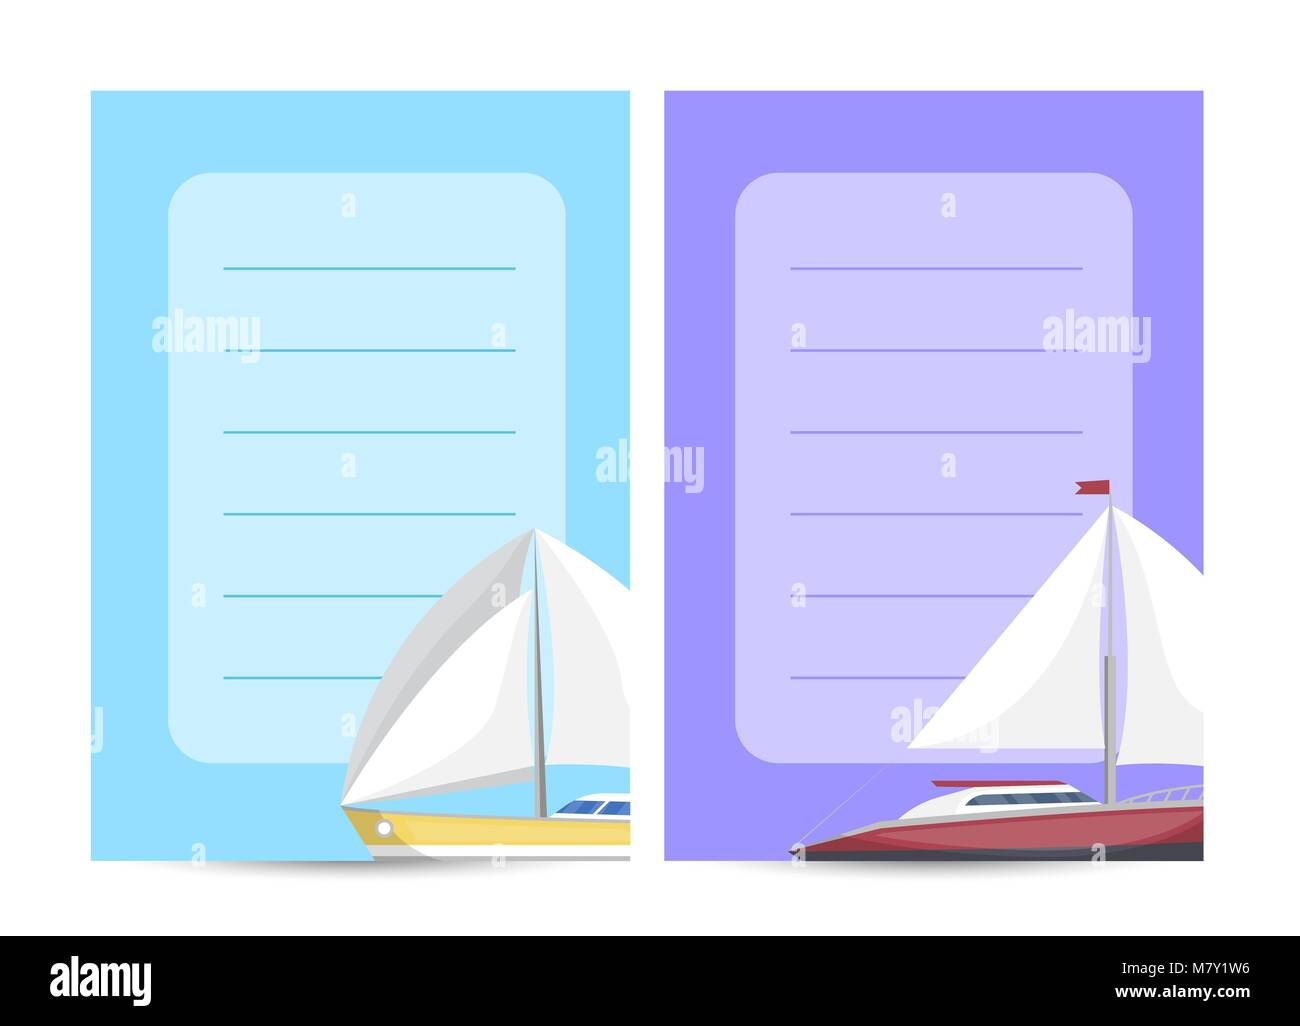 Yachting and cruising card with sailboats - Stock Image